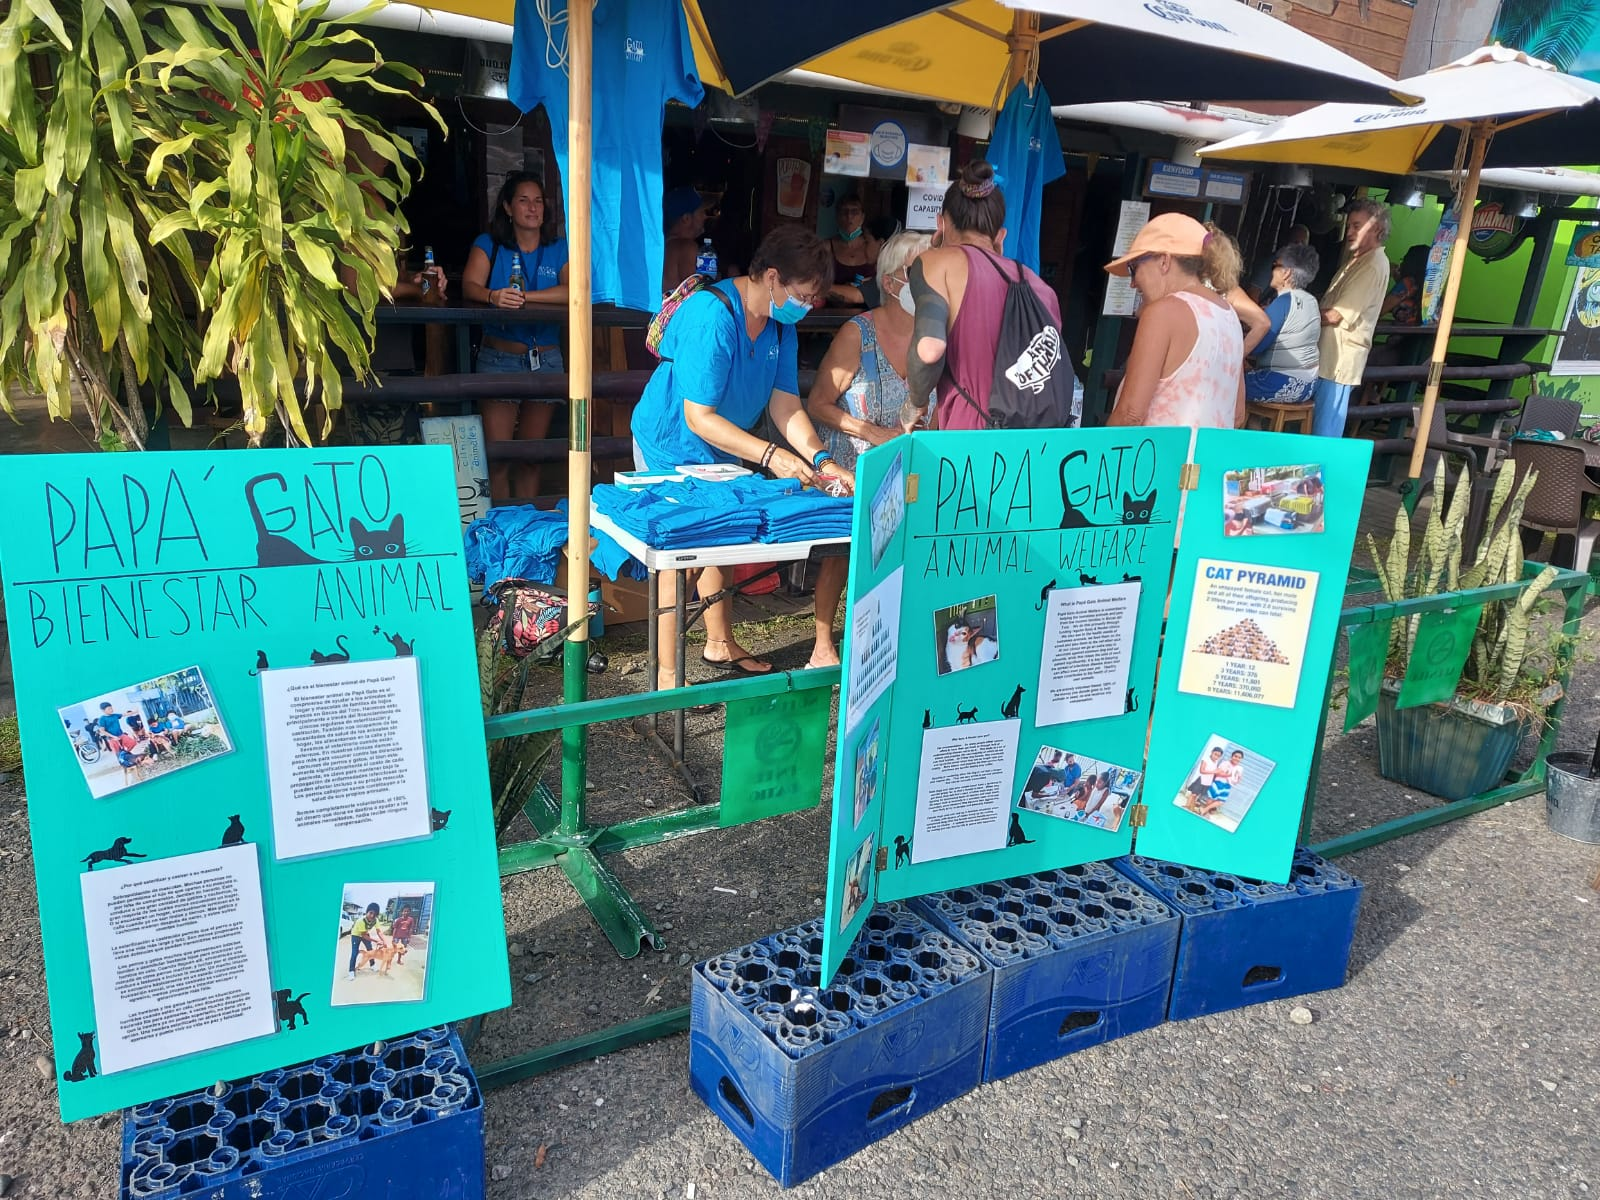 people visiting a fundraiser for Papa Gato Animal Welfare